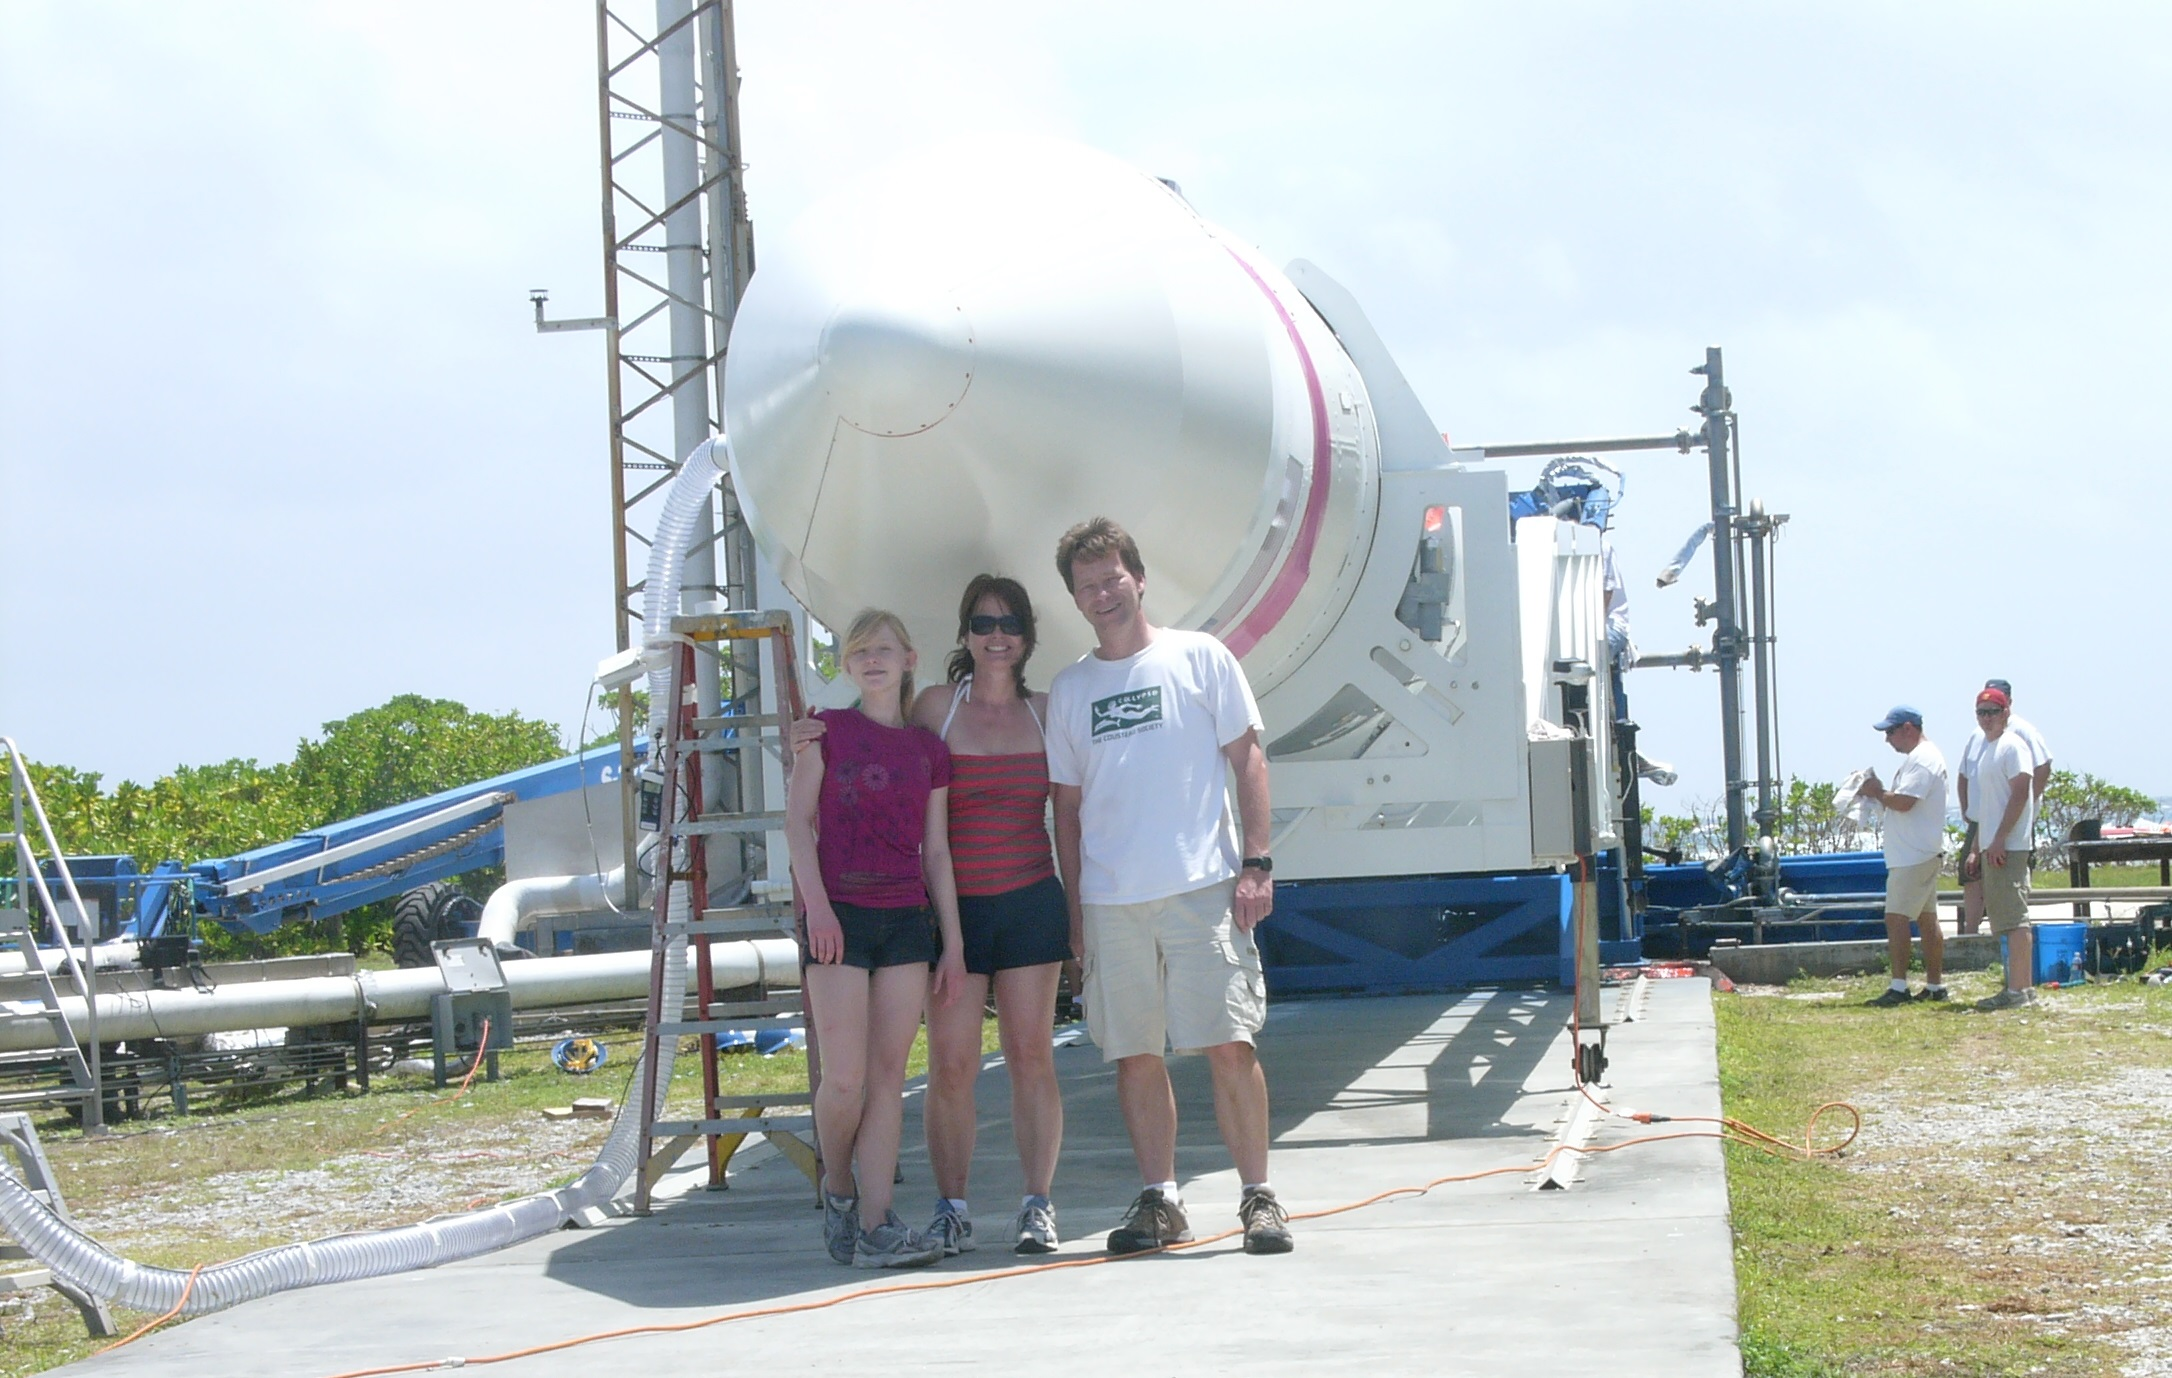 Hans Koenigsmann with his family, and the Falcon 1 rocket, at Omelek.